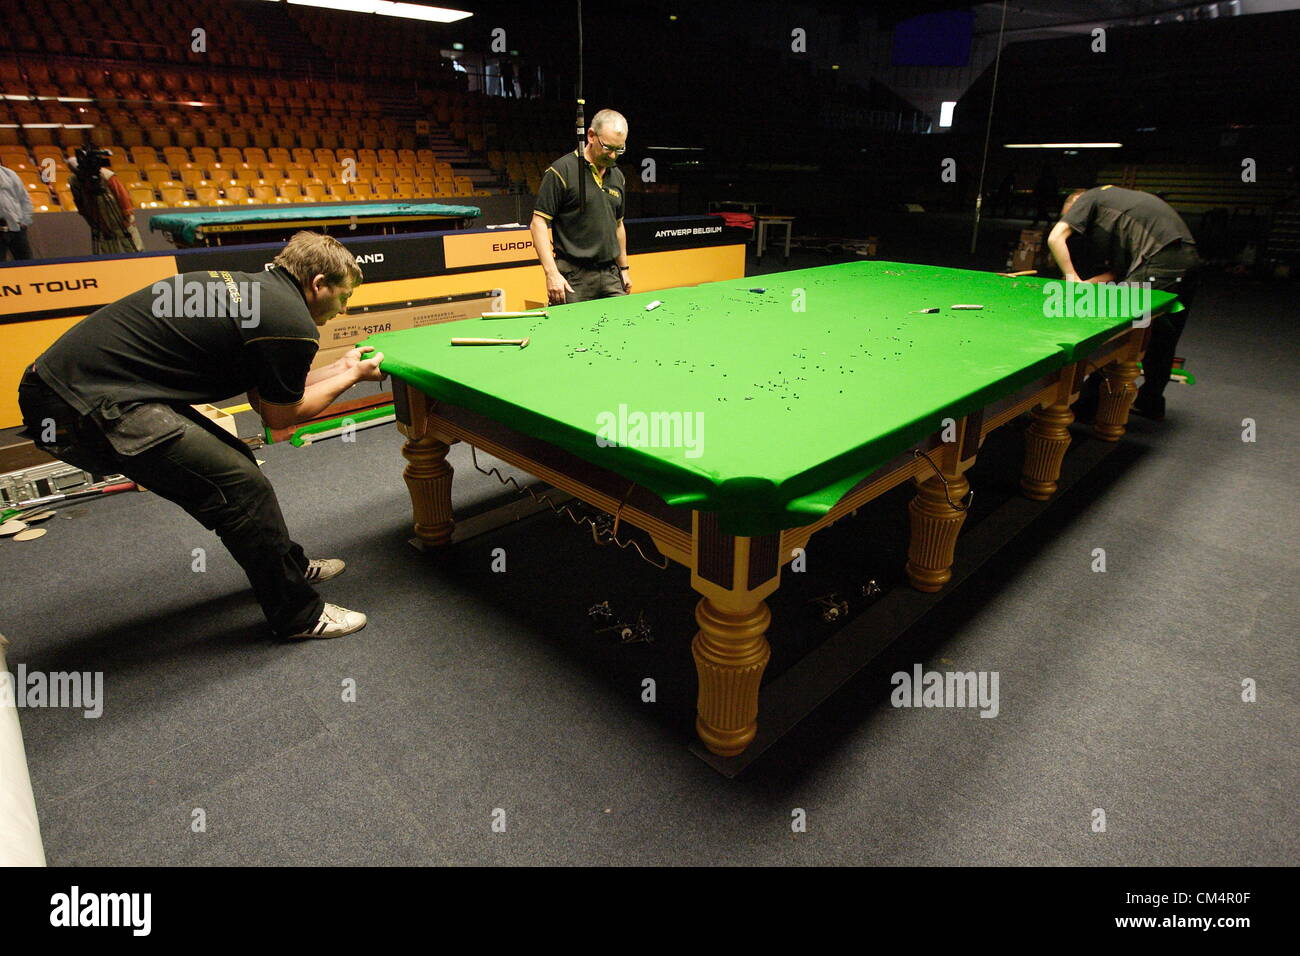 Snooker Tables Stock Photos Snooker Tables Stock Images Alamy - Conference pool table